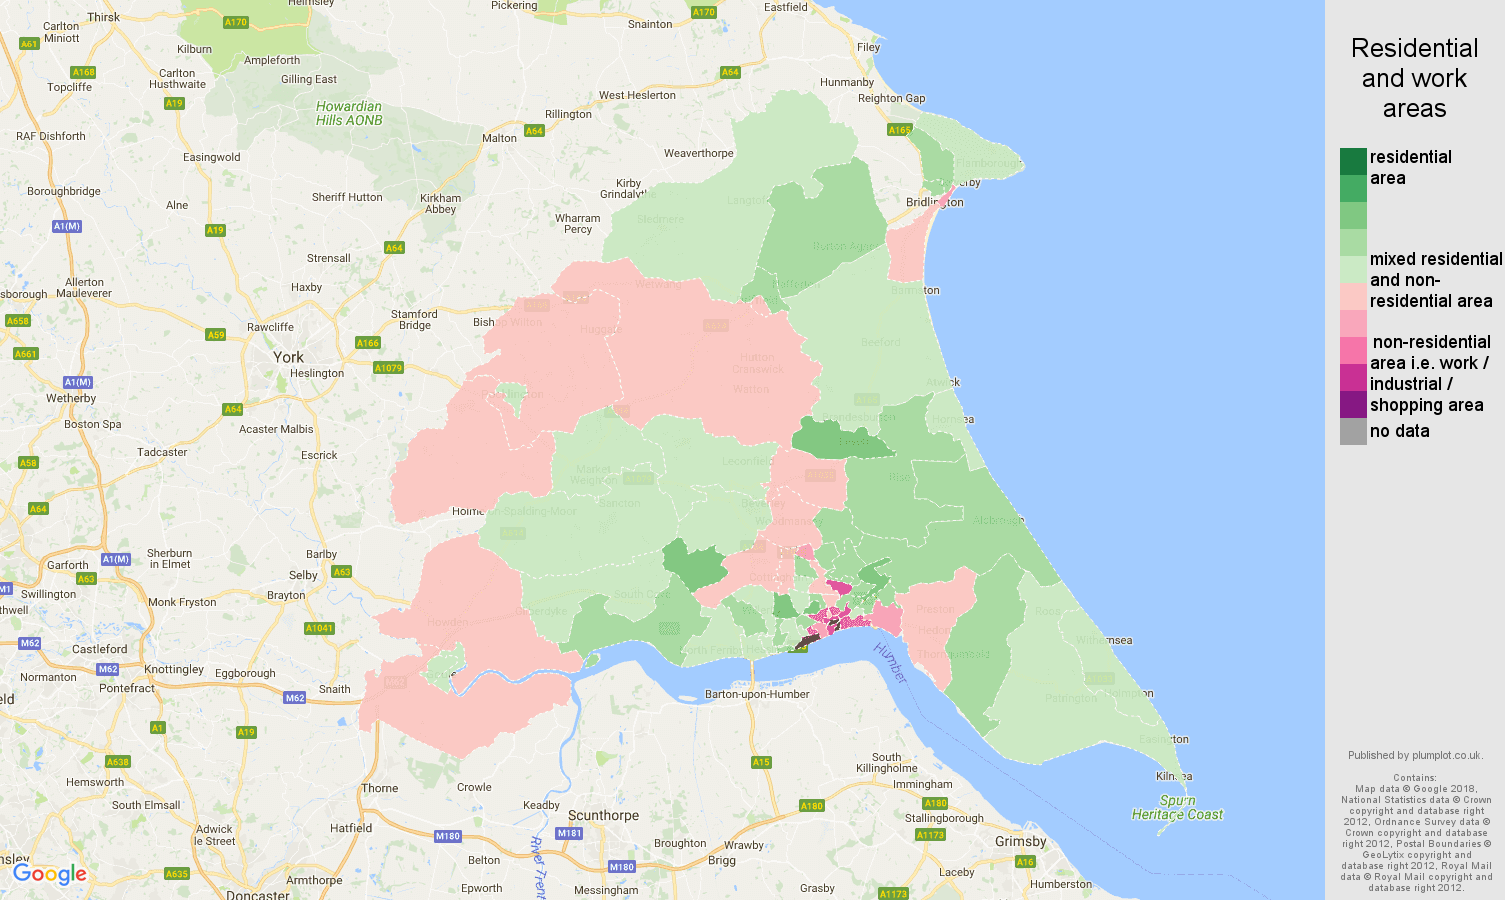 East Riding of Yorkshire residential areas map